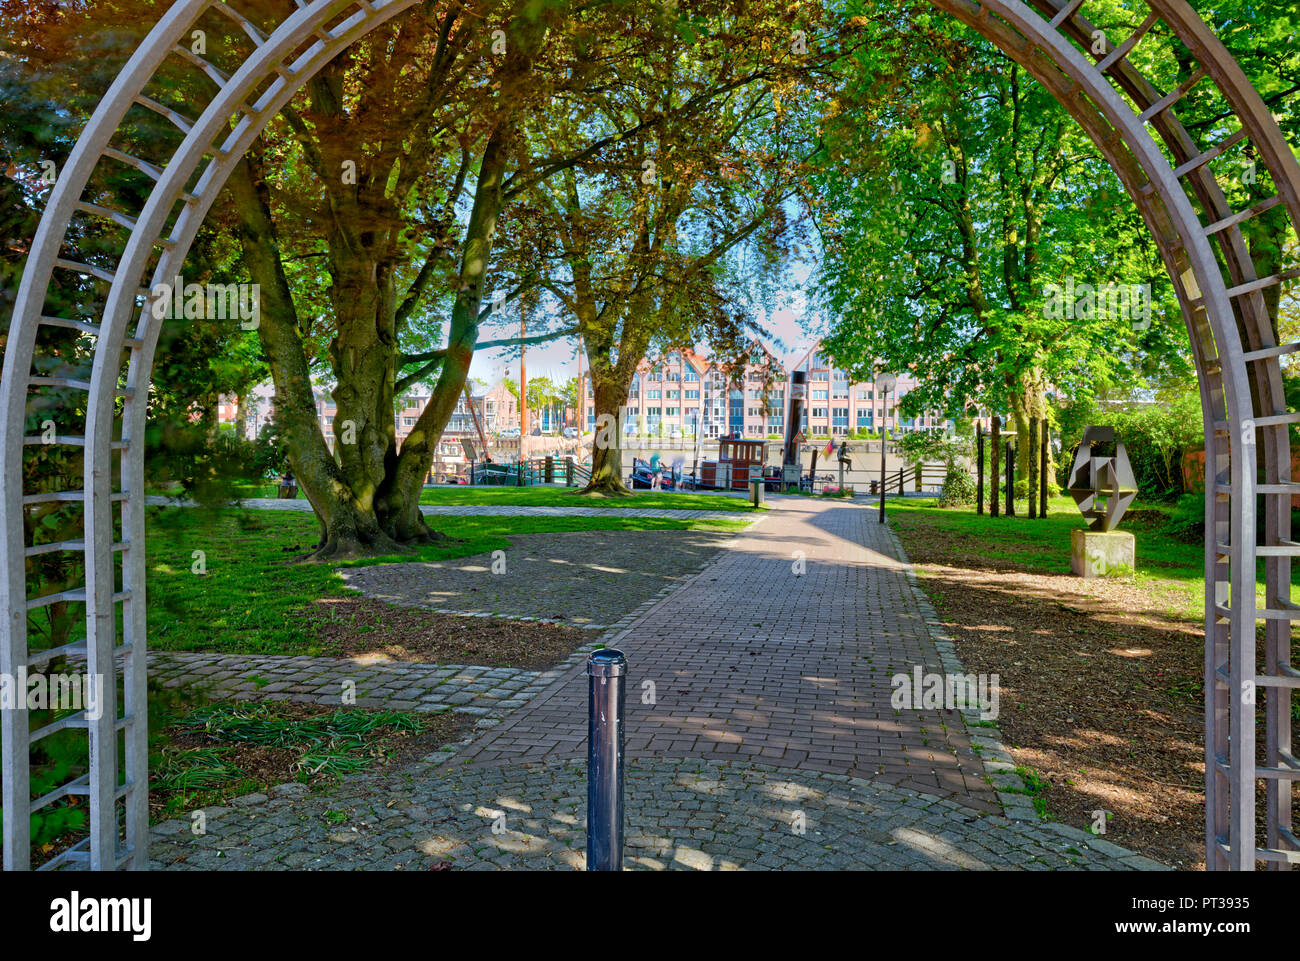 Idyll, Commercial Port, Nesse, Green space, Leer, East Frisia, Lower Saxony, Germany, Europe - Stock Image